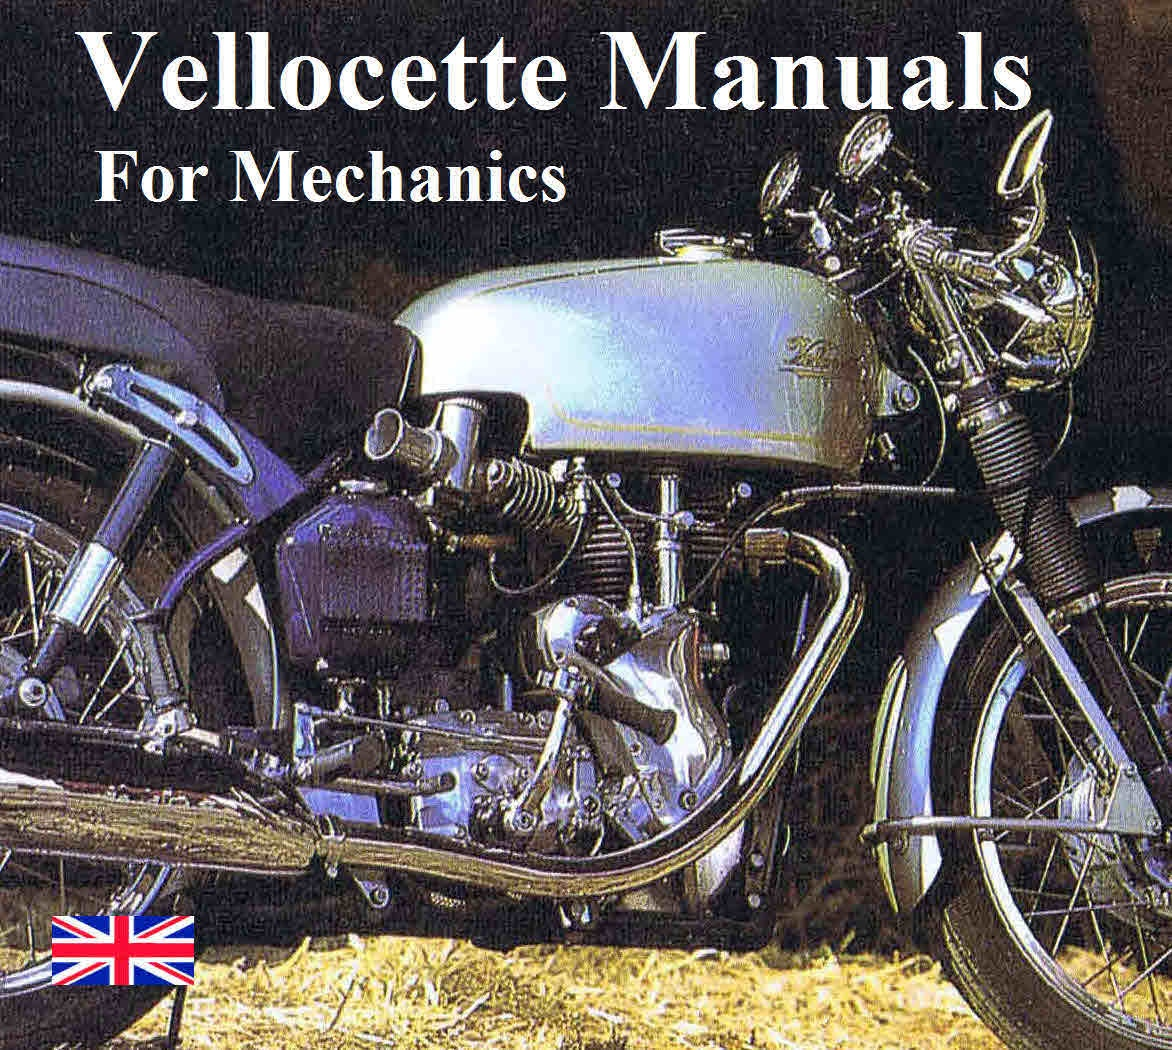 Velocette vintage motorcycle manuals for mechanics asfbconference2016 Gallery